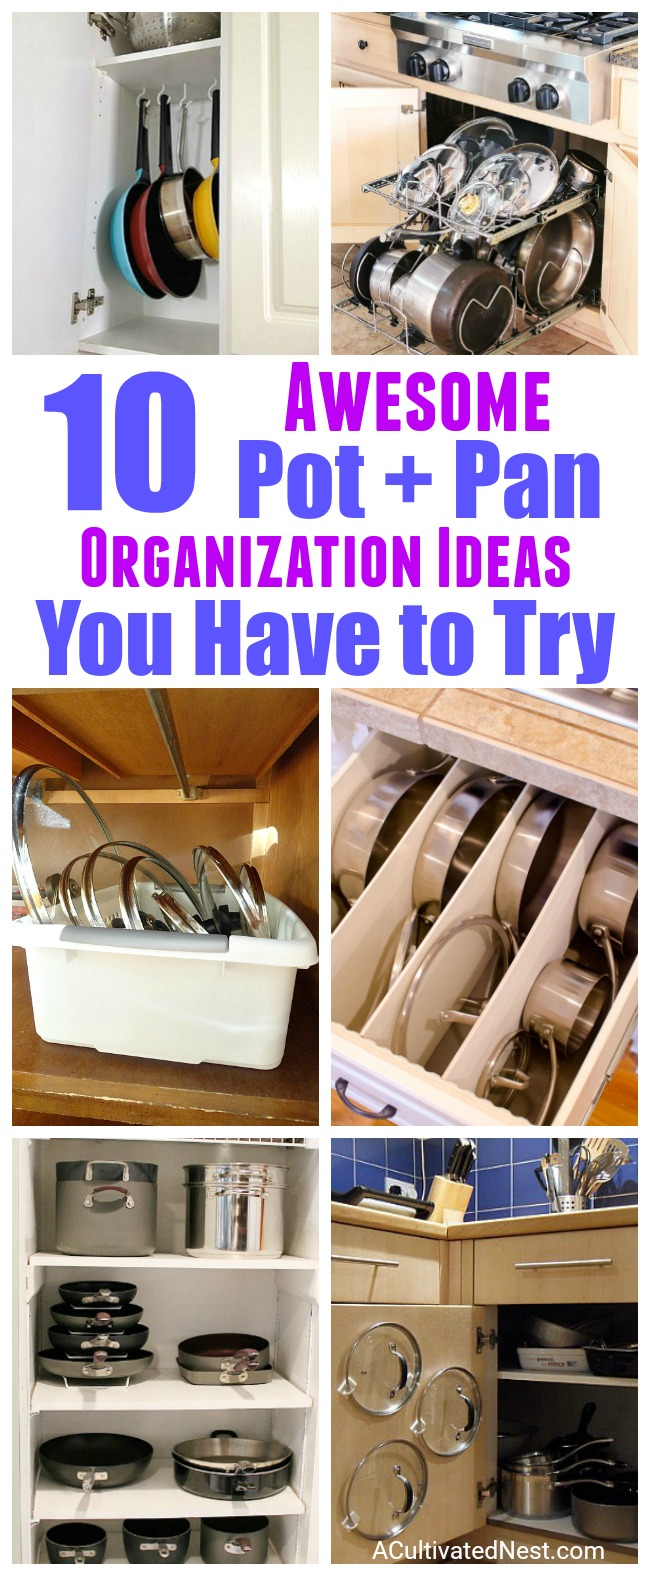 10 Awesome Tips for Organizing Your Pots & Pans- Tired of all your disorganized pots and pans? Get you kitchen organized easily with these 10 awesome ideas for organizing pots and pans! | home organization, how to organize your cookware, bakeware, #diy #organizing #organization #kitchen